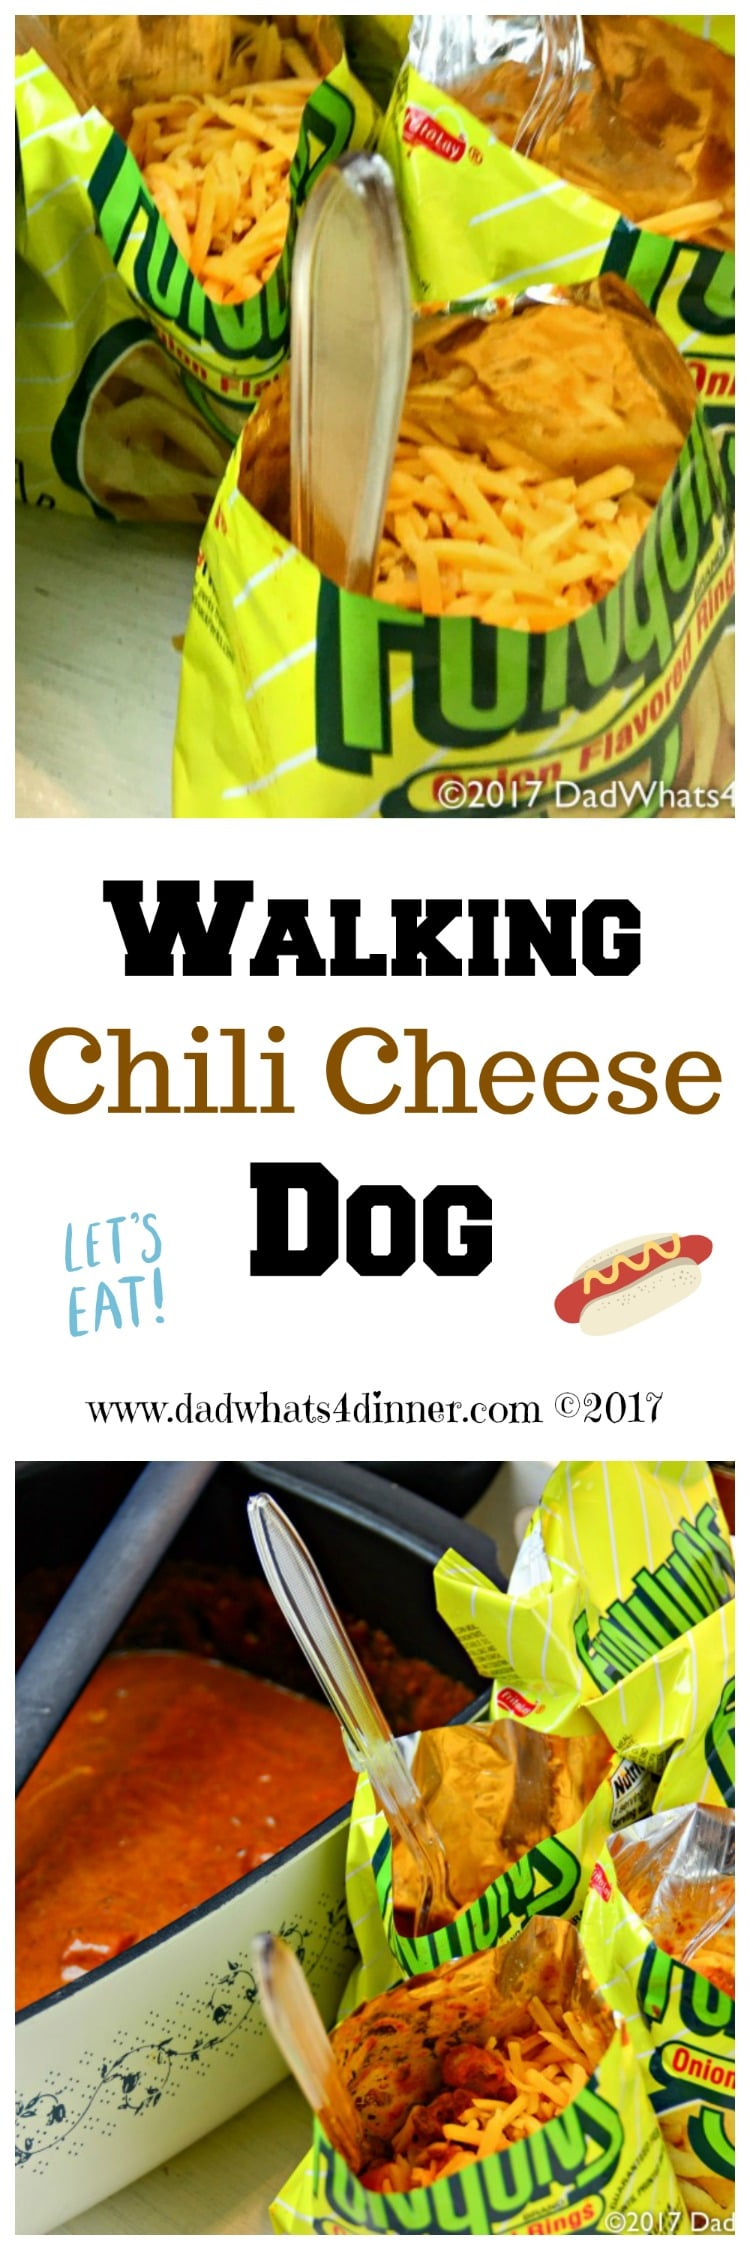 You will be the star at your next tailgate with this easy to makeWalking Chili Cheese Dog recipe. All the great Cheese Coney flavor, but no bun needed!  www.dadwhats4dinner.com #tailgatefood